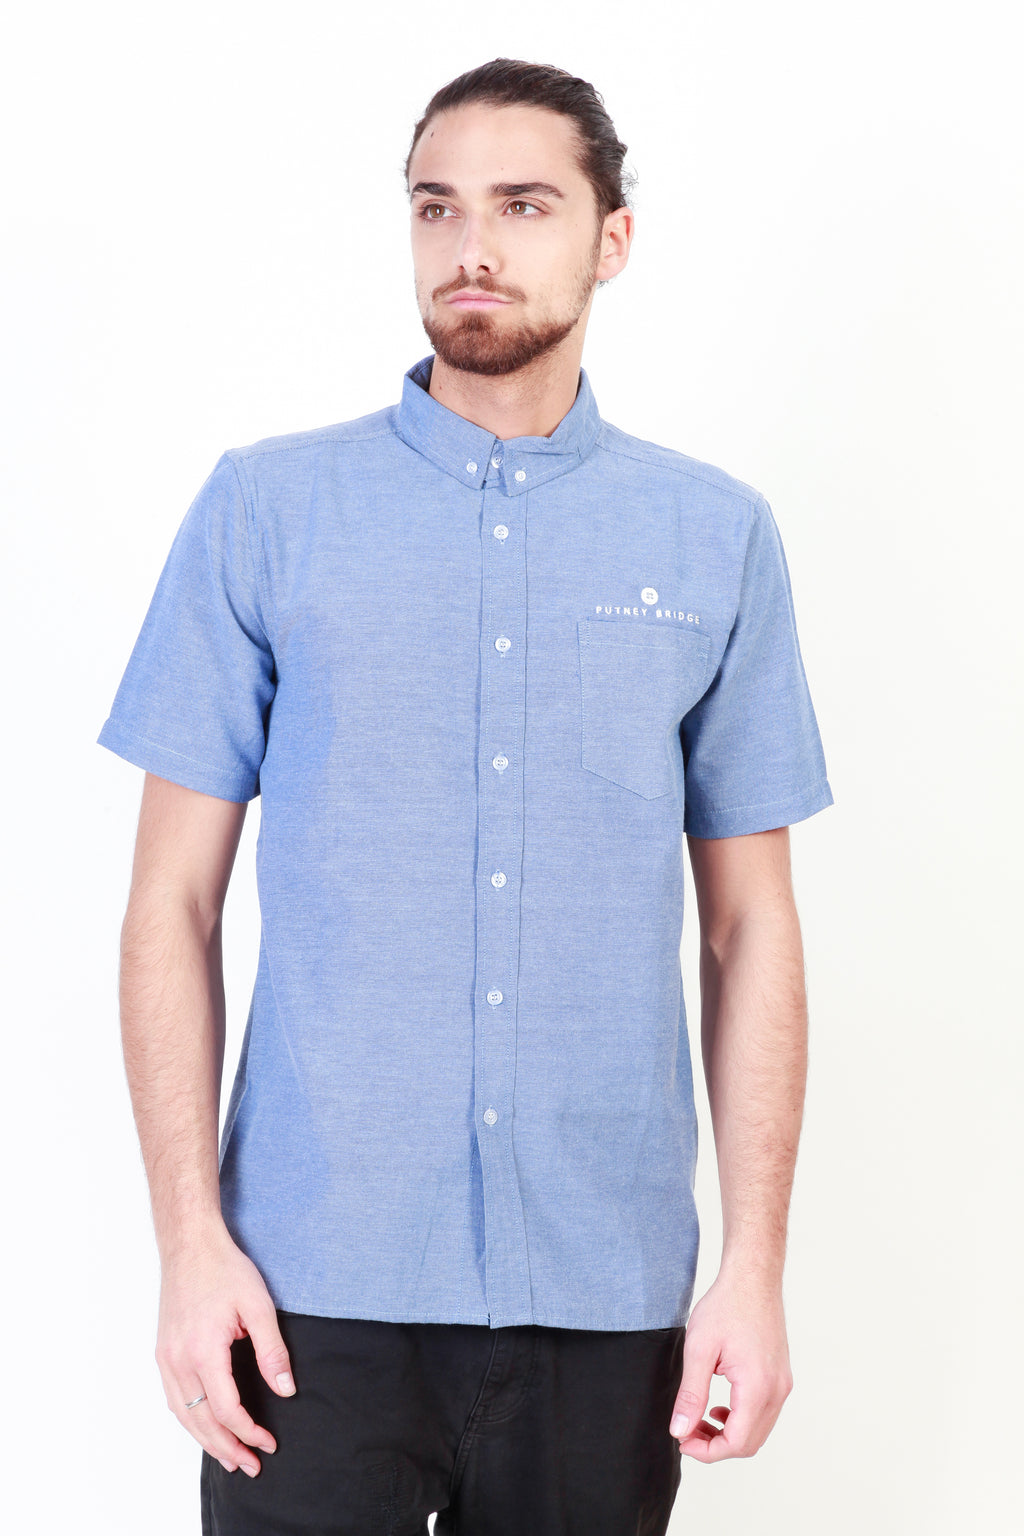 Putney Bridge PBMSH022 Shirts